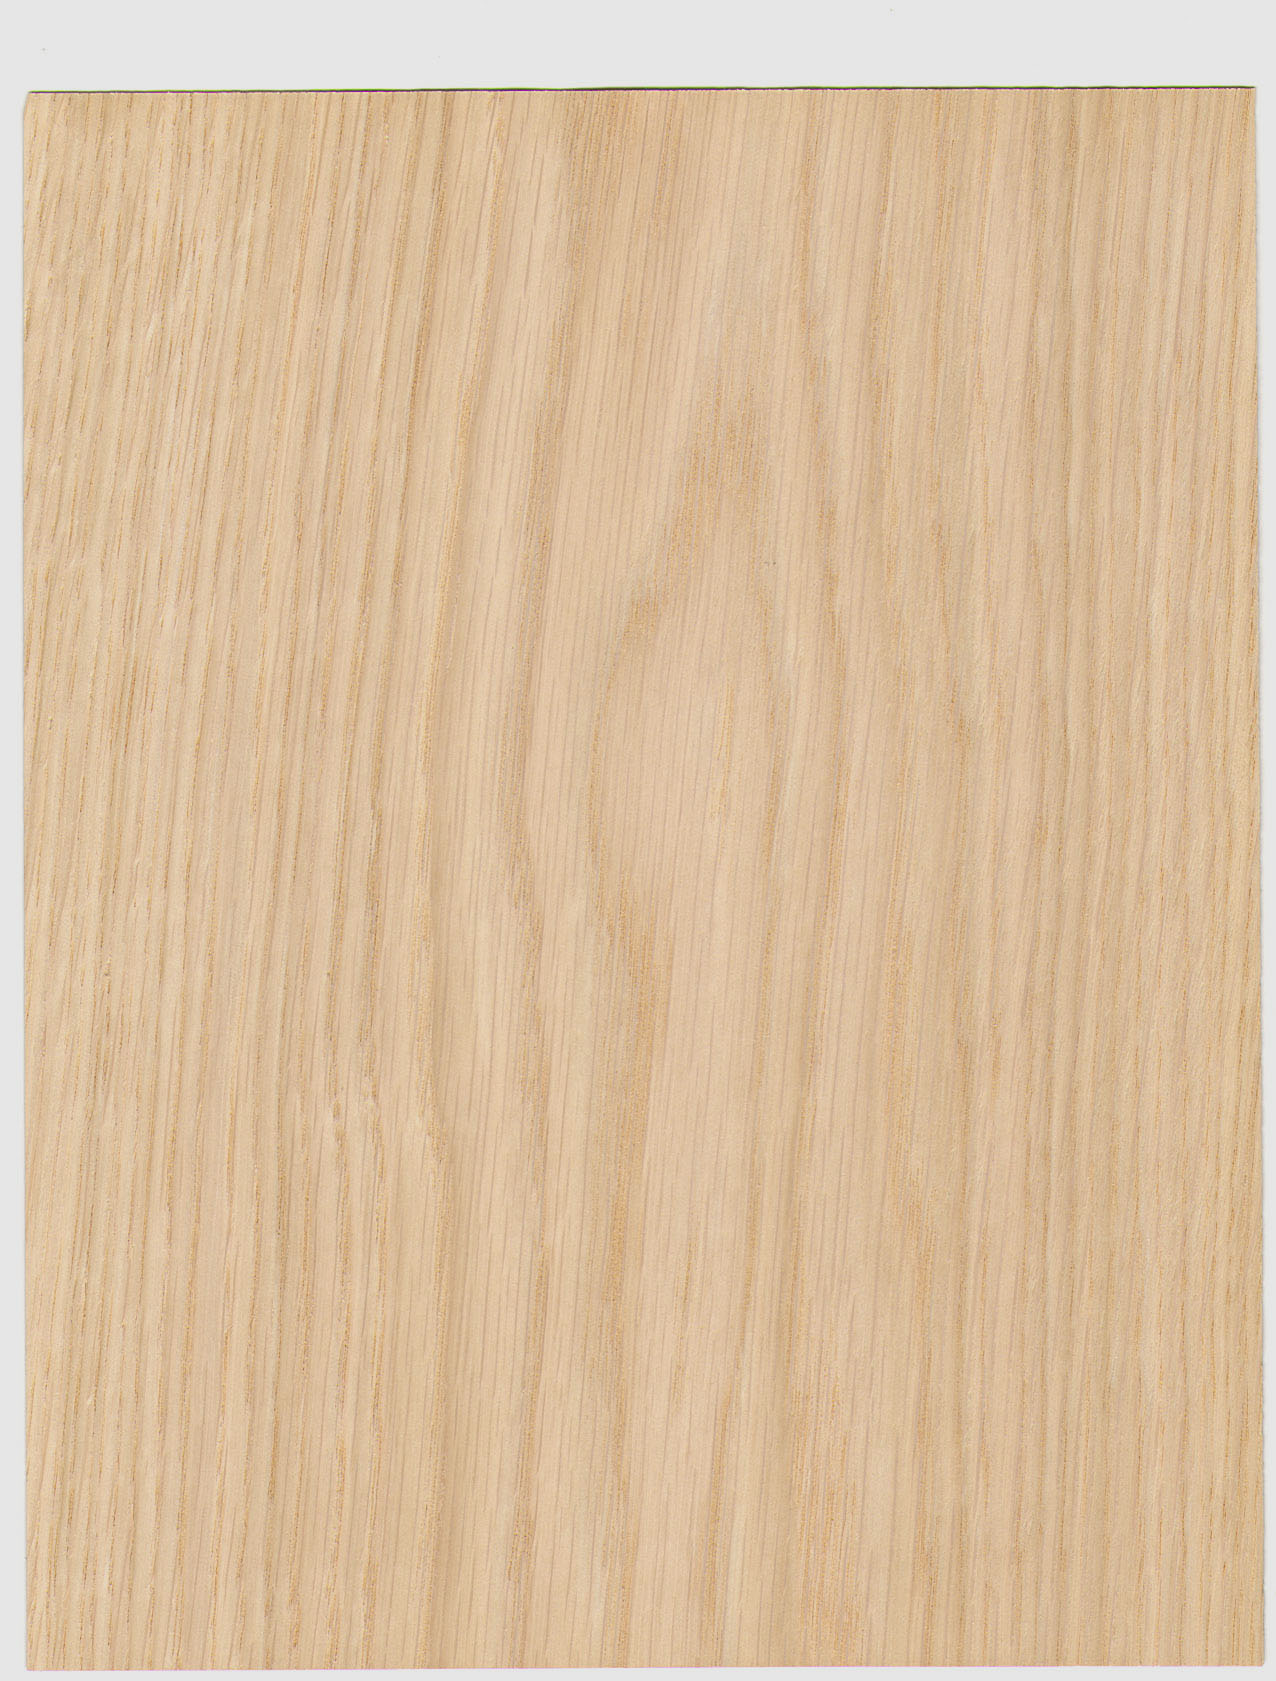 Laminated wood clipart clipground